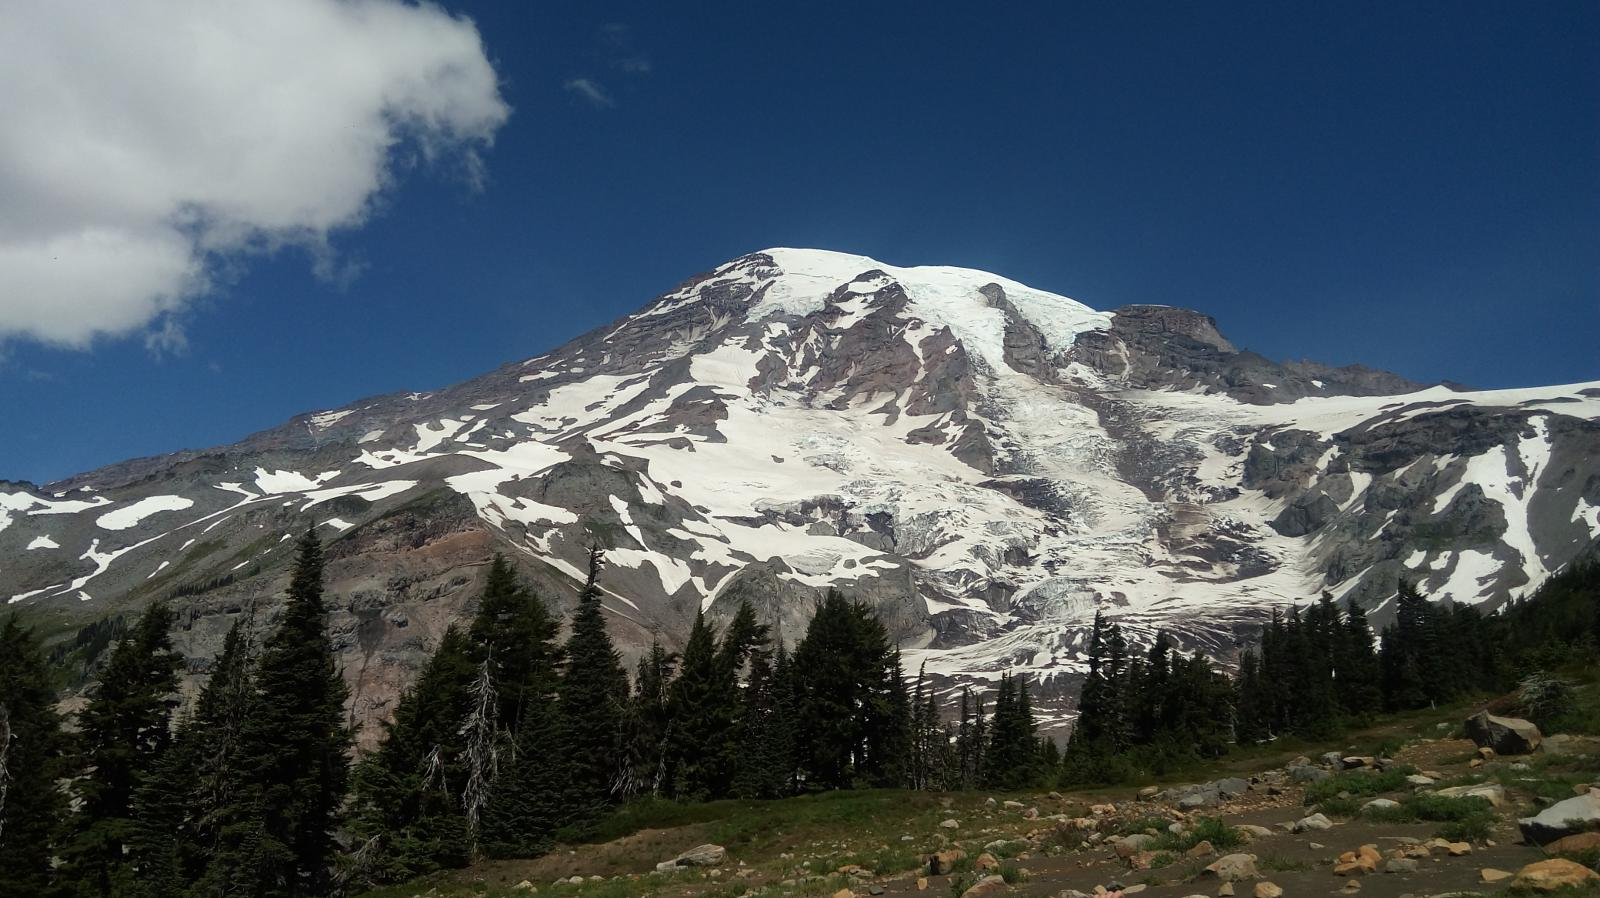 Fotoğraf Skyline trail. Mount Rainier National Park.